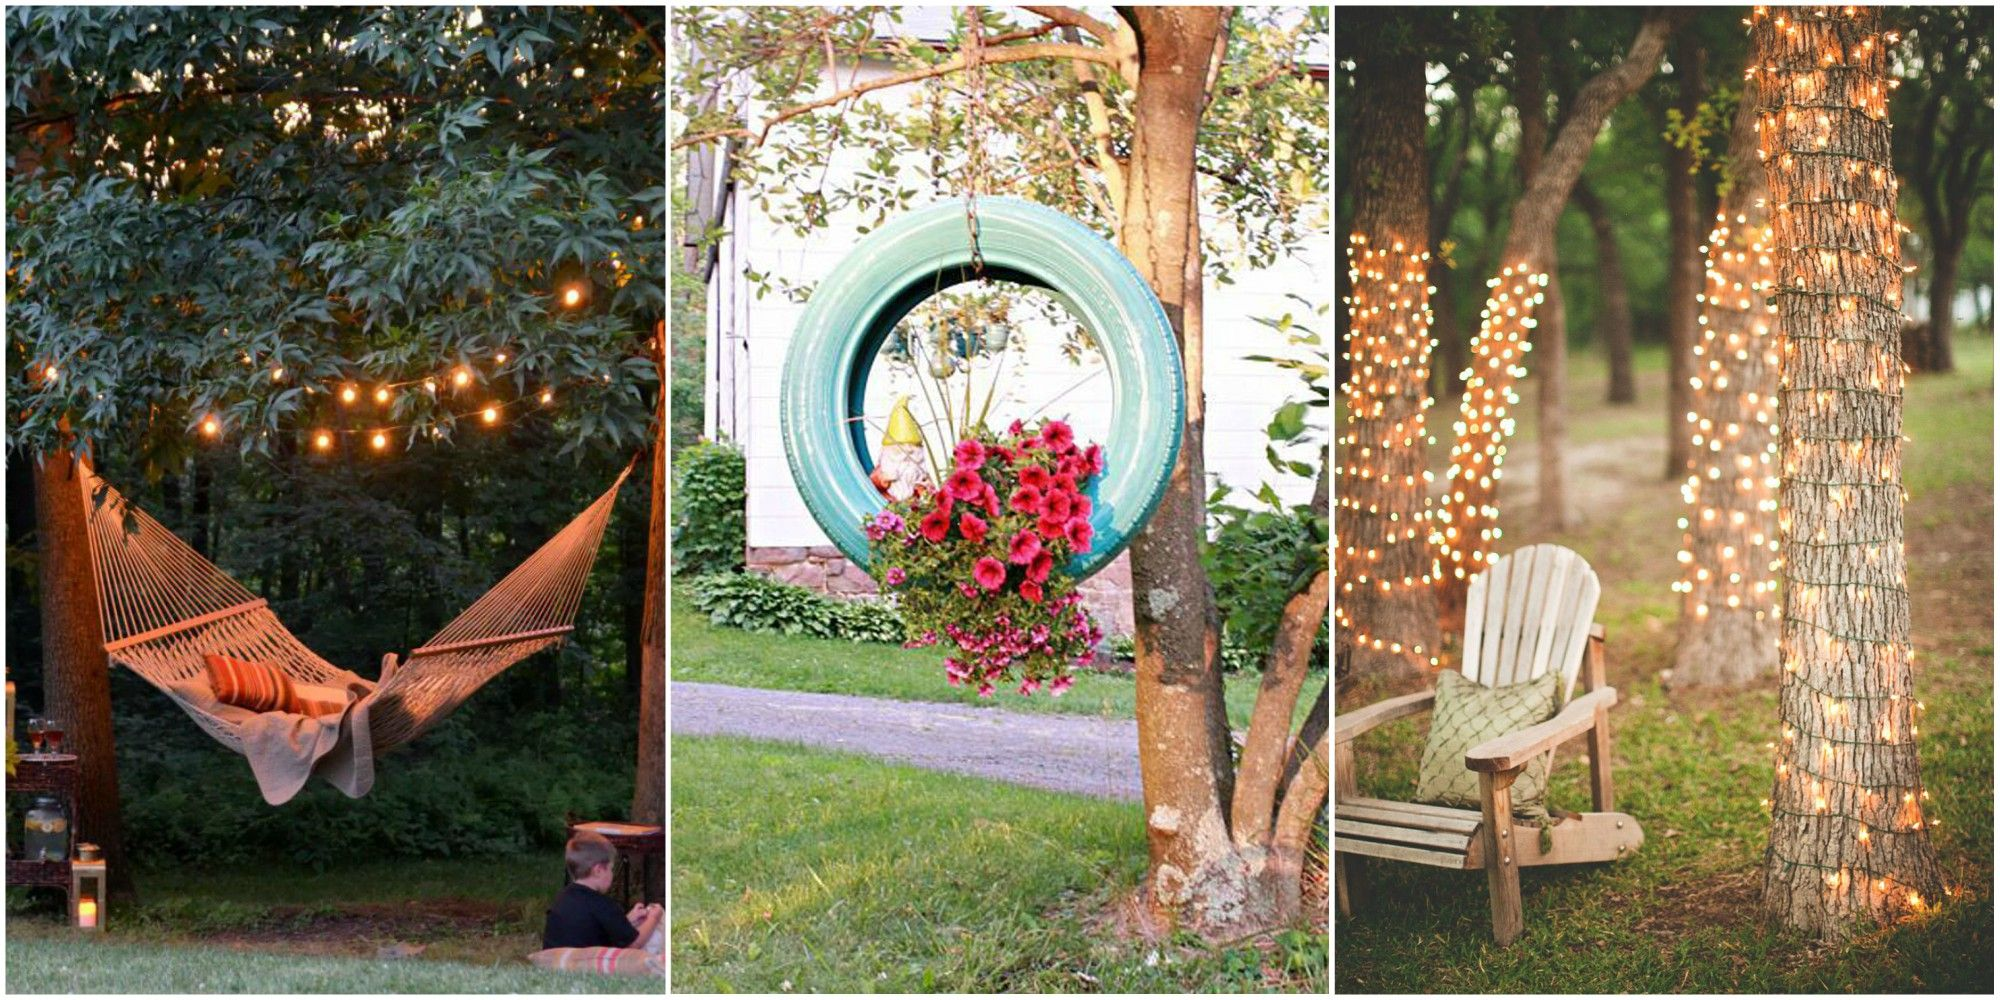 67 DIY Backyard Design Ideas